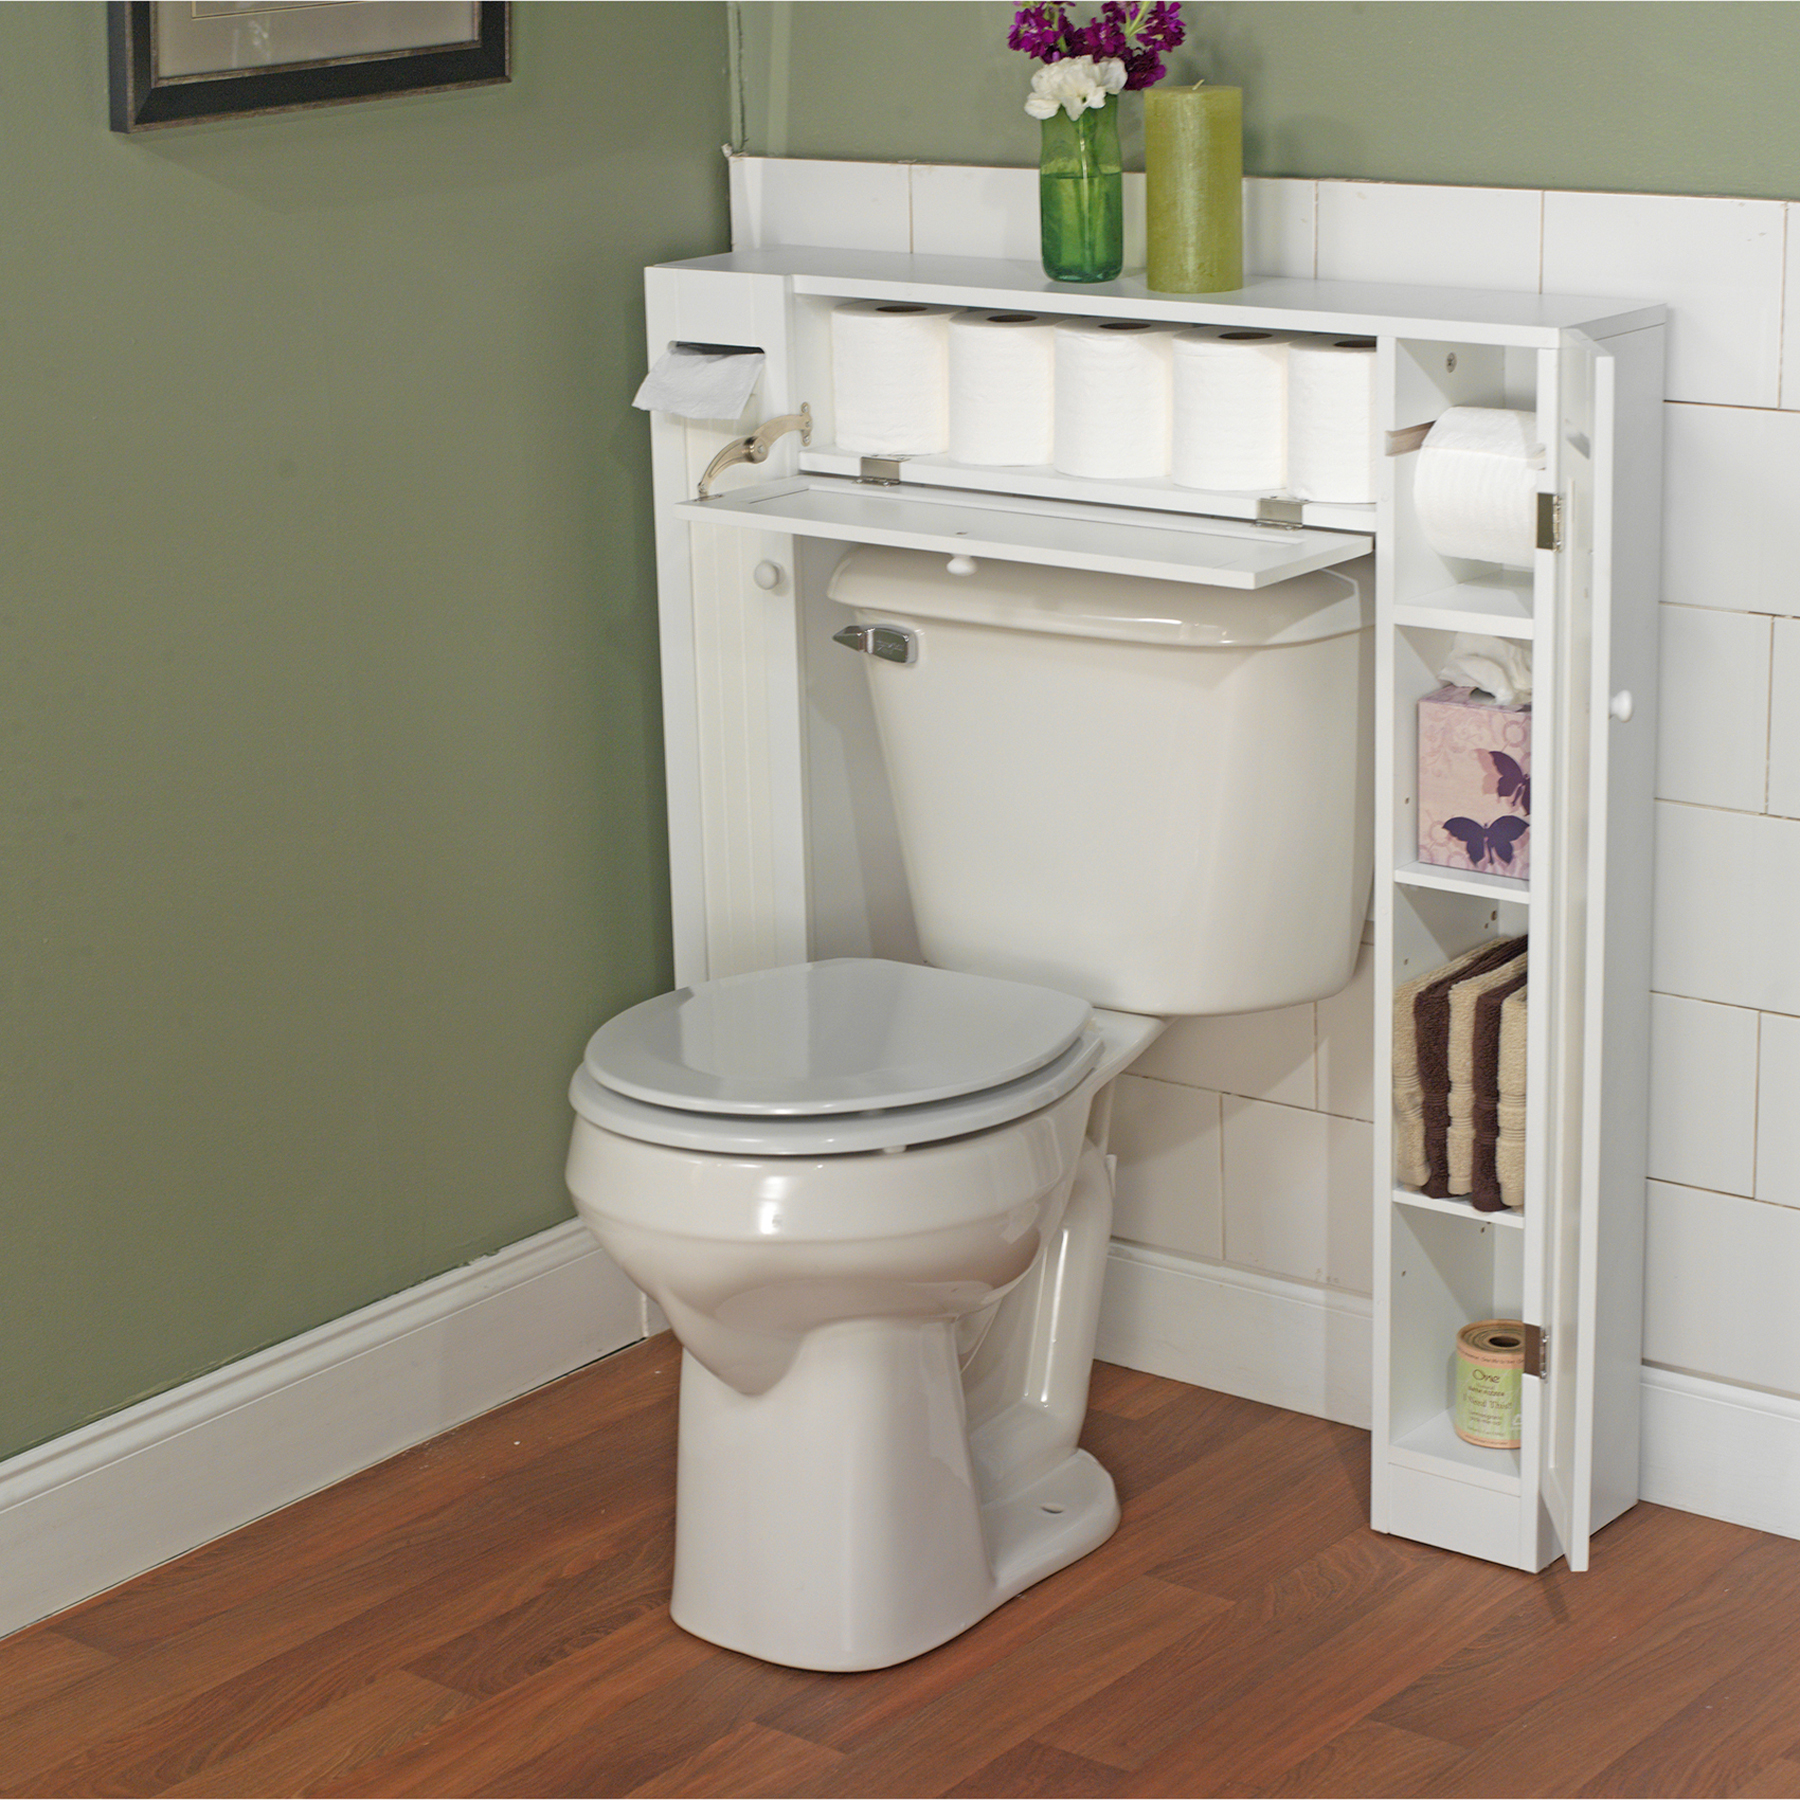 Bathroom Space Saver Cabinet